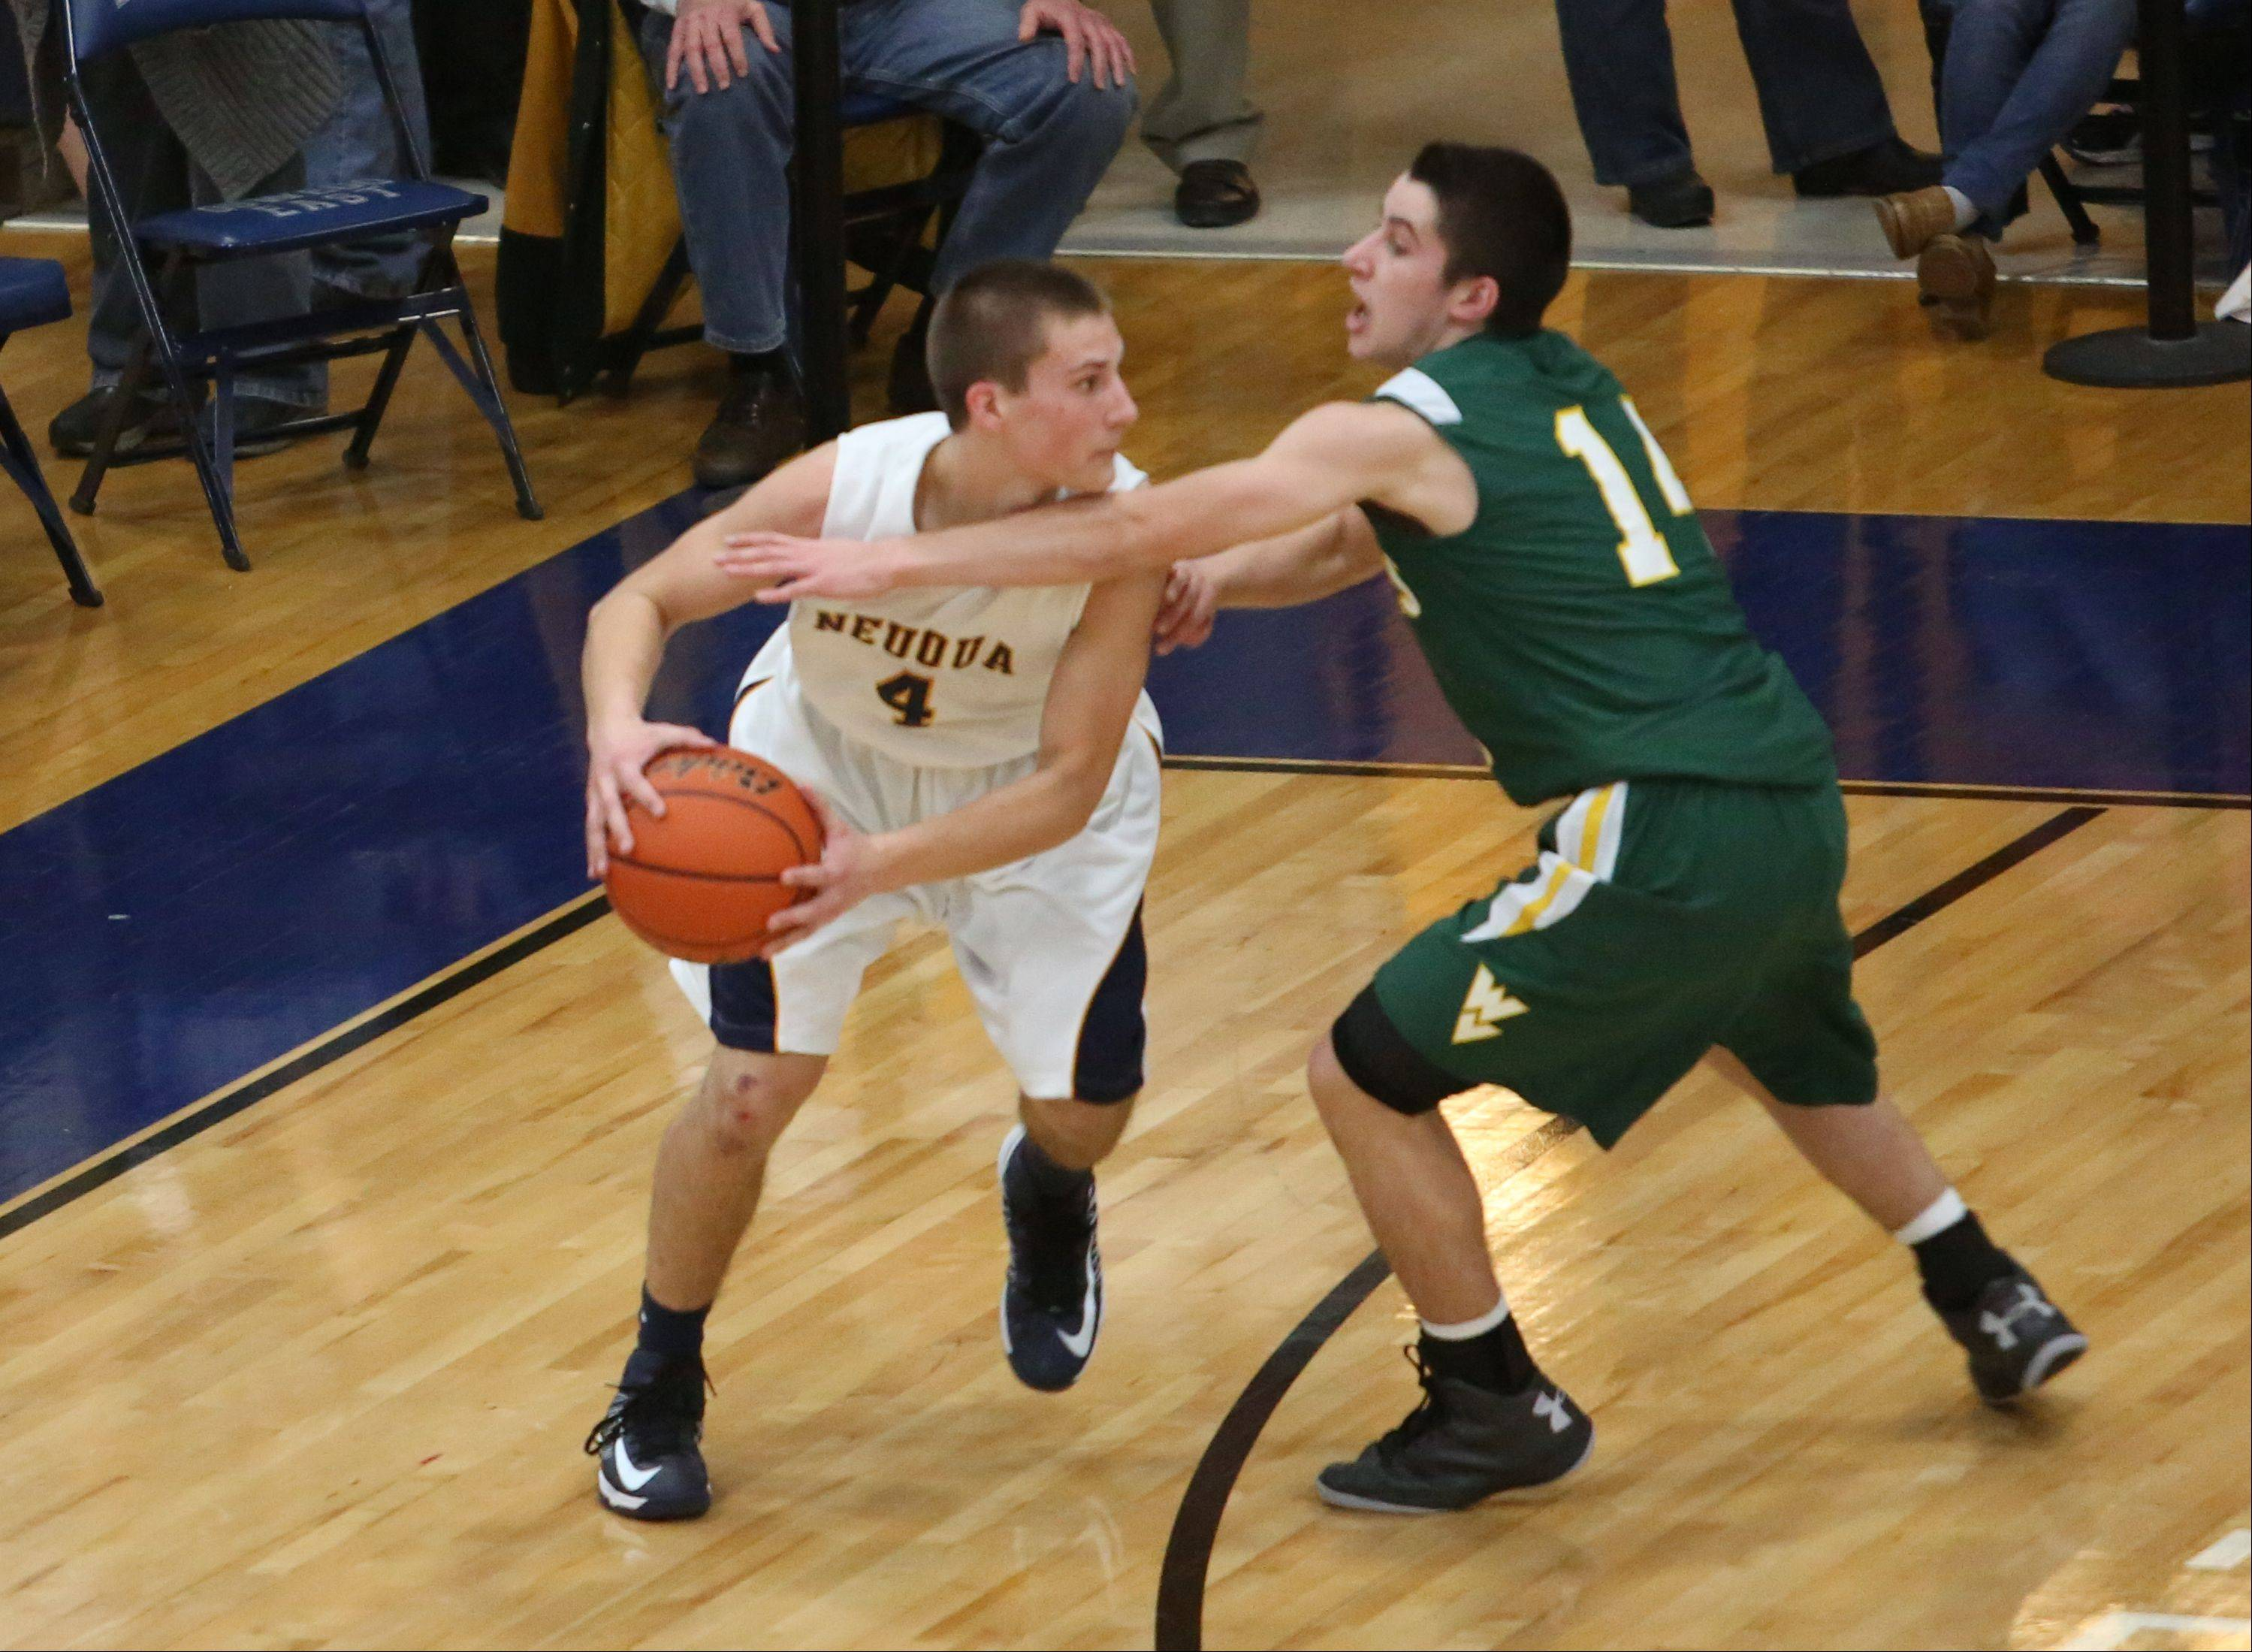 Neuqua Valley played Waubonsie Valley Friday night in Class 4A boys basketball Oswego East regional final action.